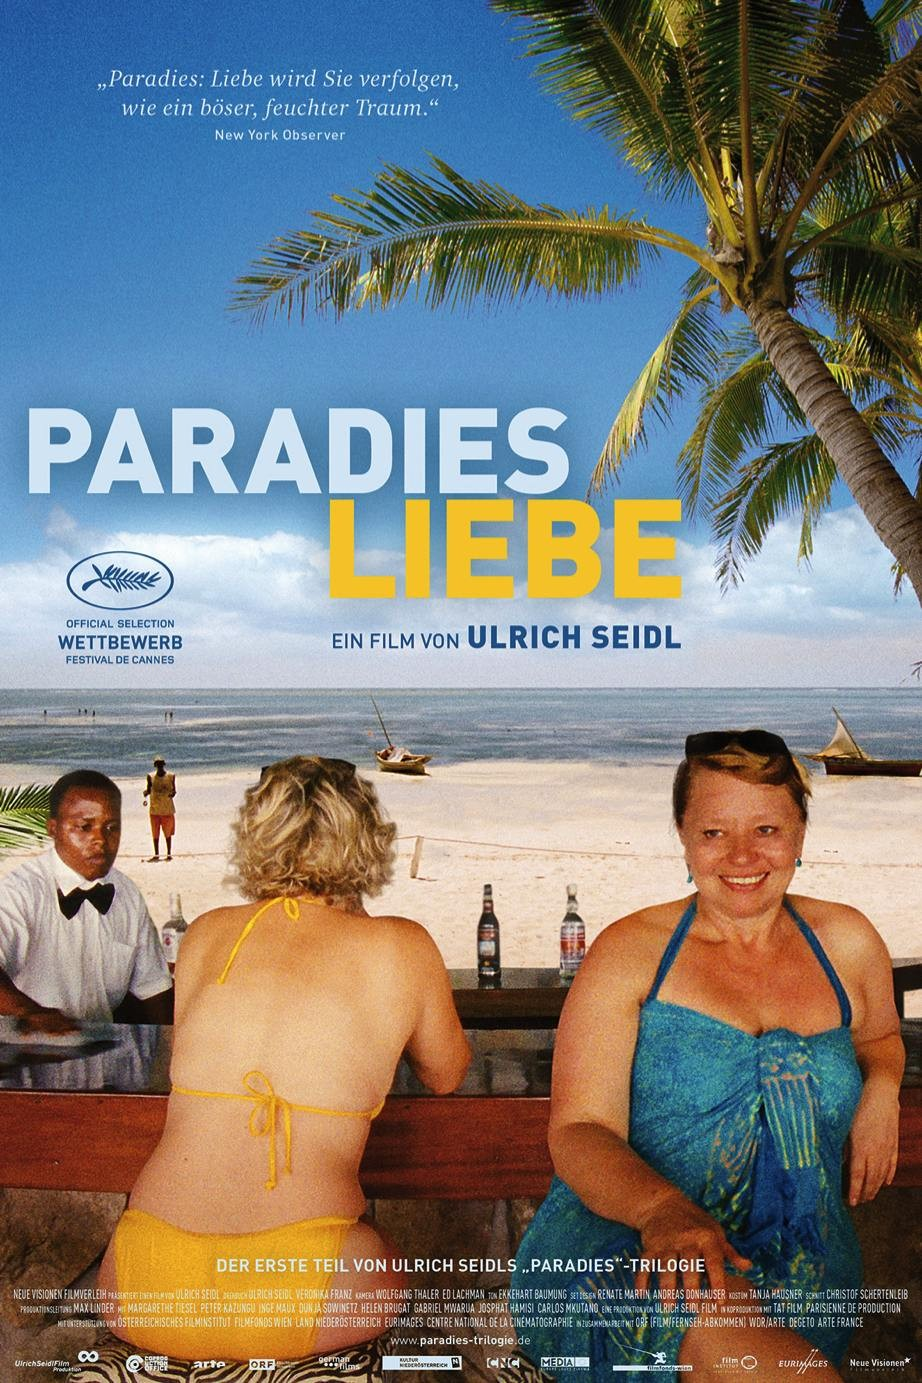 Paradies: Liebe 2012 movie